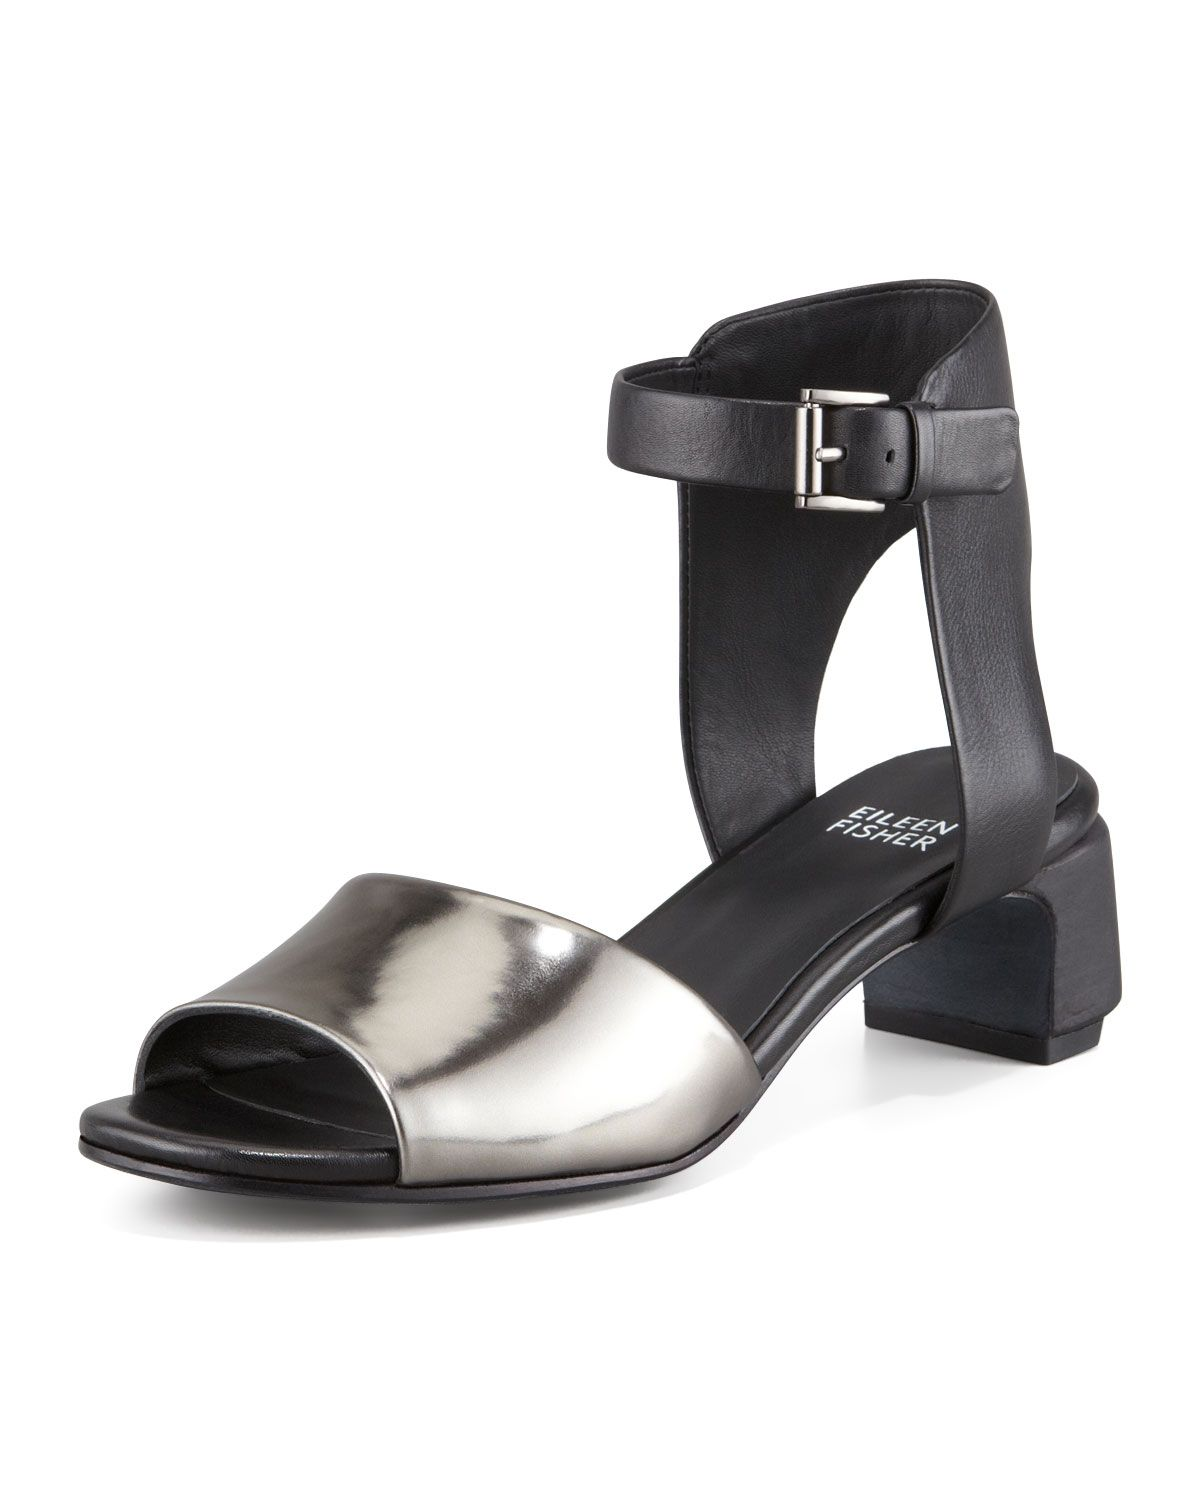 Eileen Fisher Catch Leather Ankle-Wrap Sandal, Pewter